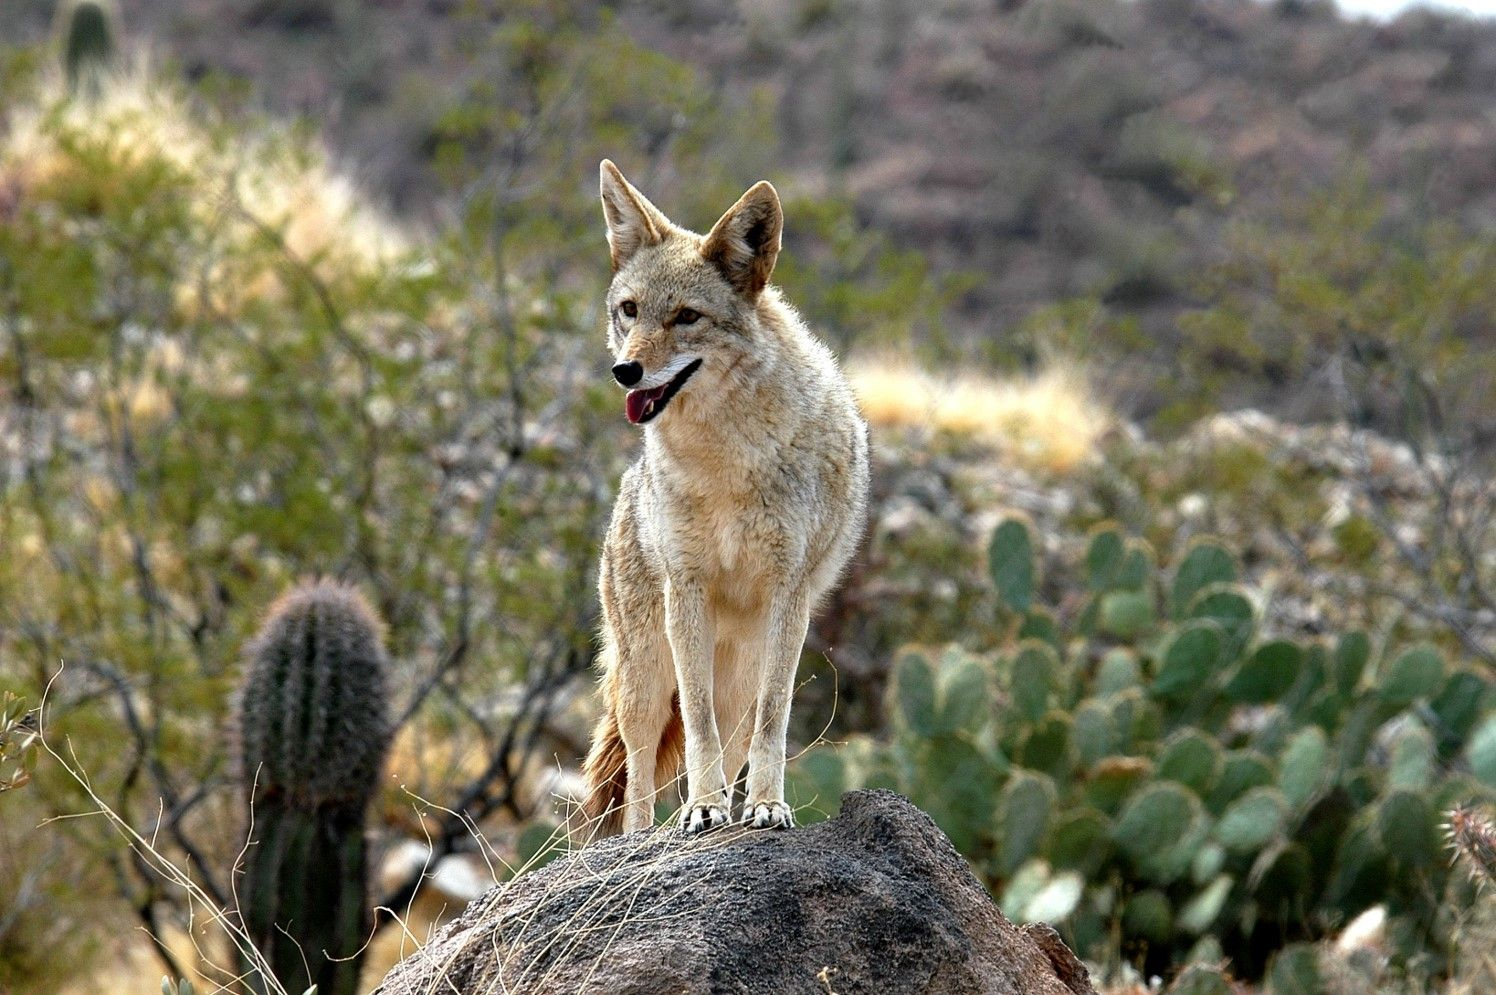 WOLVES & COYOTES